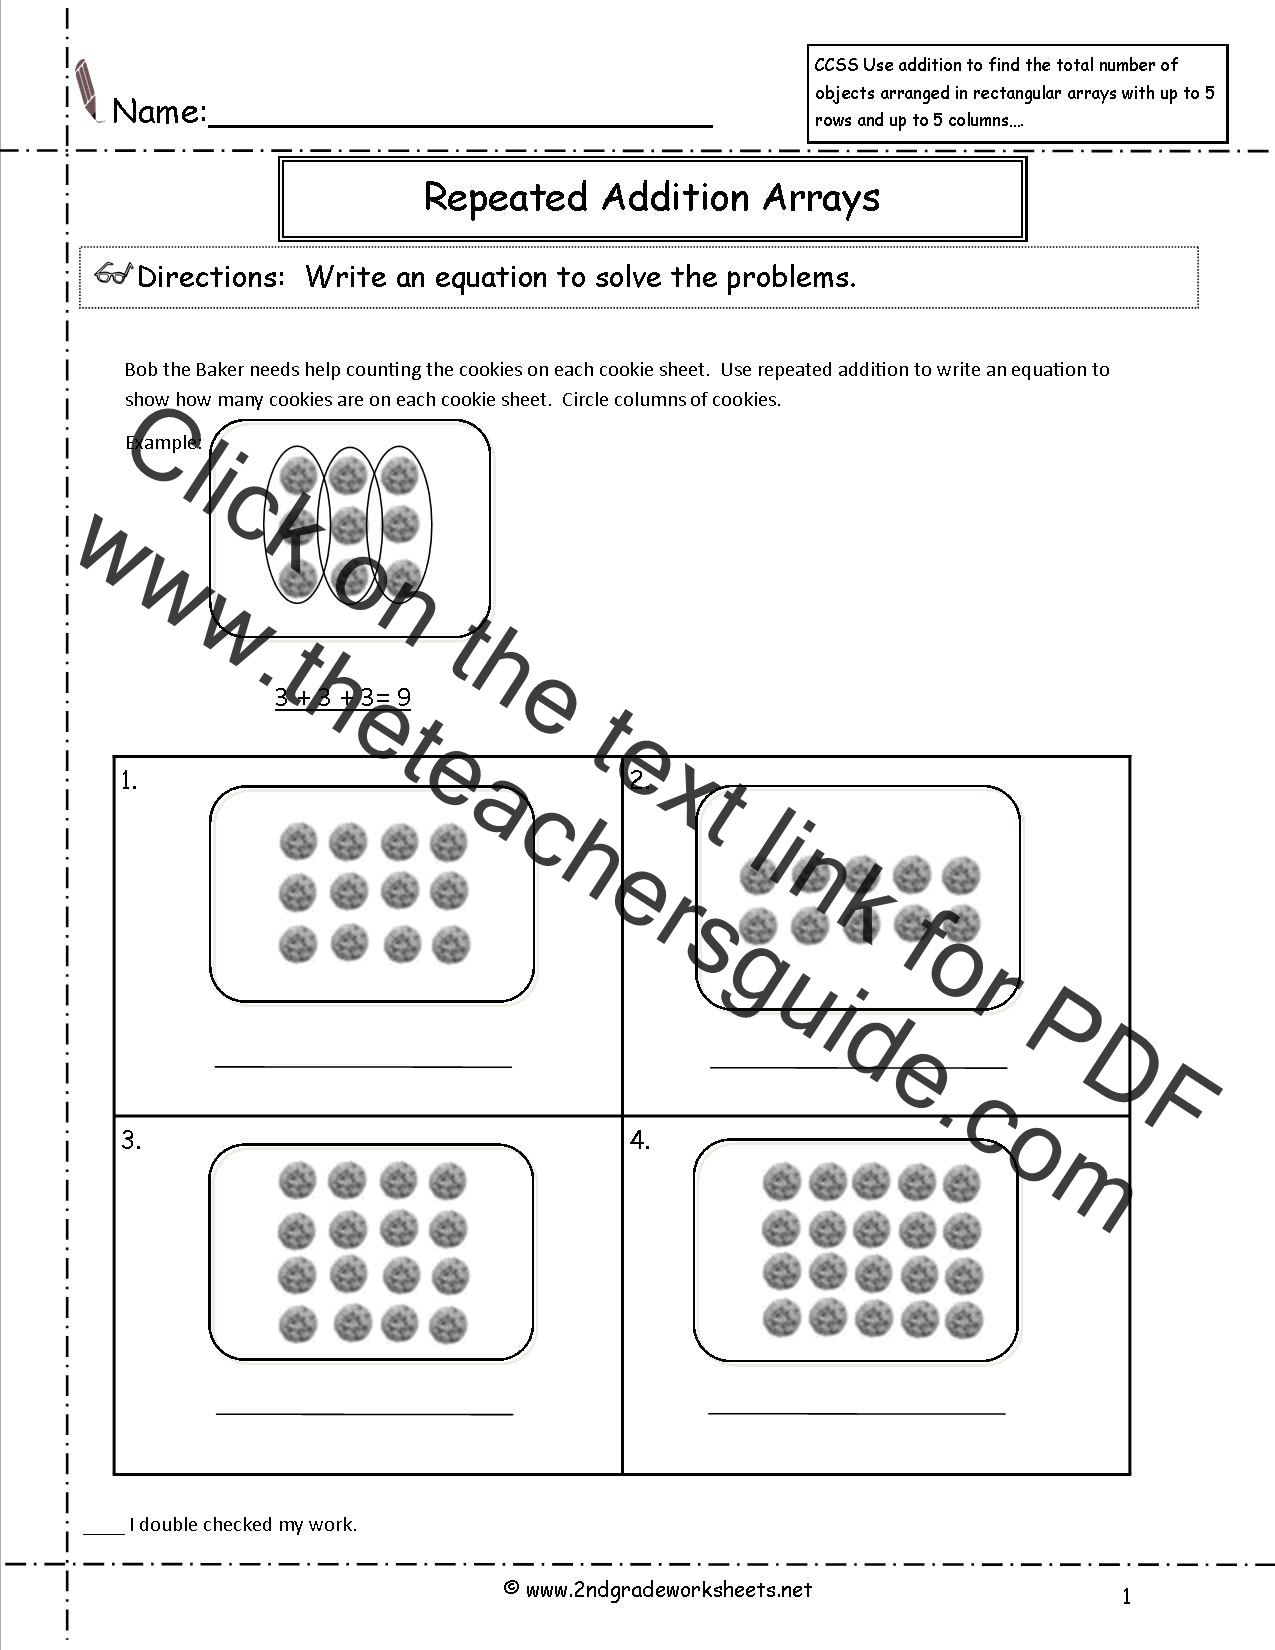 Worksheet Repeated Addition Worksheets 3rd Grade ccss 2 oa 4 worksheets repeated addition arrays worksheets